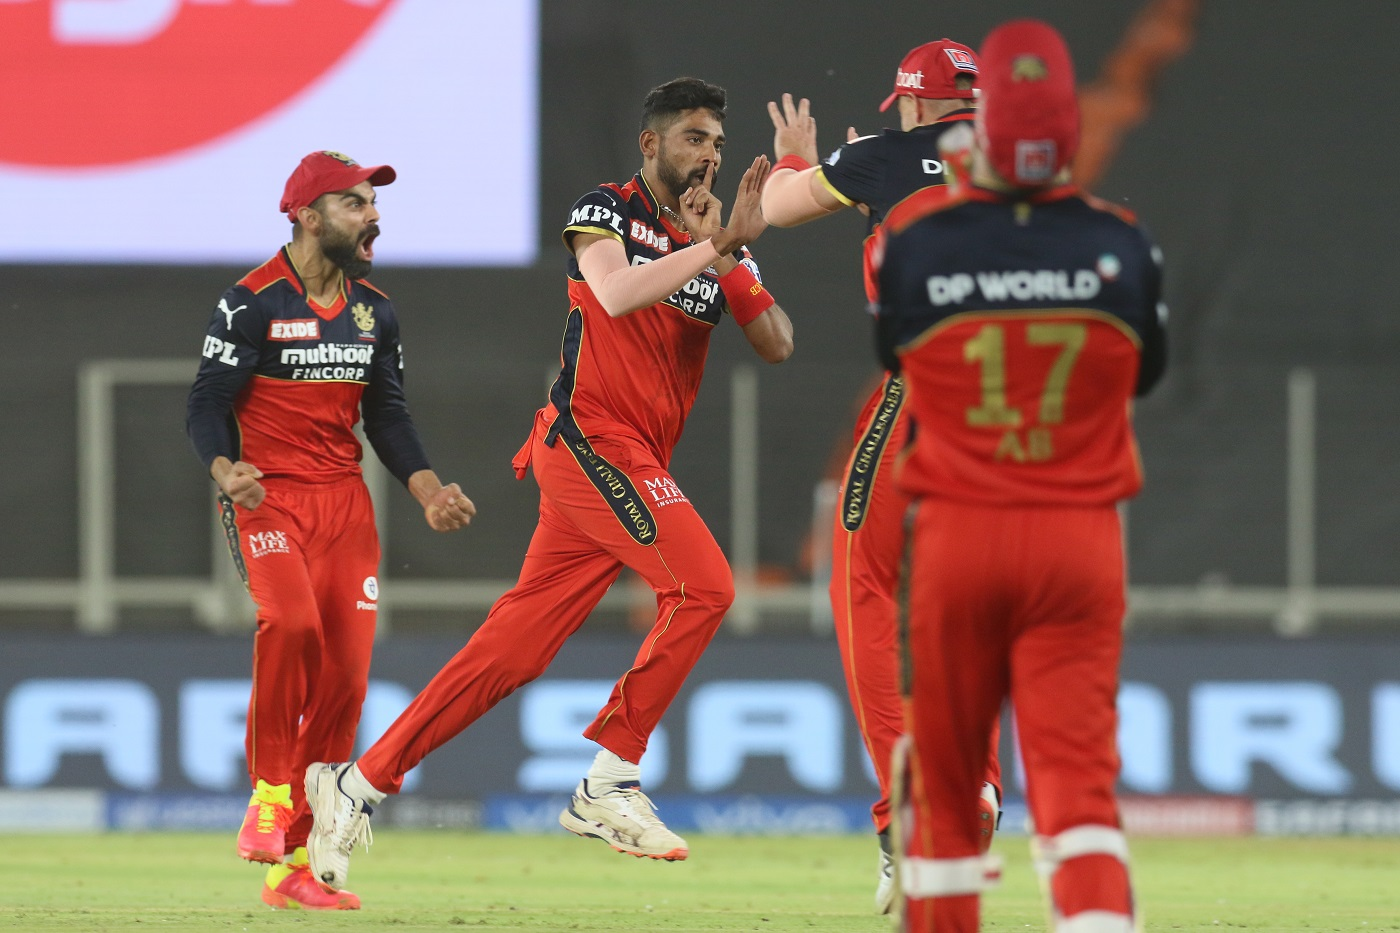 RCB are just plowing through opposition at the moment  | BCCI-IPL